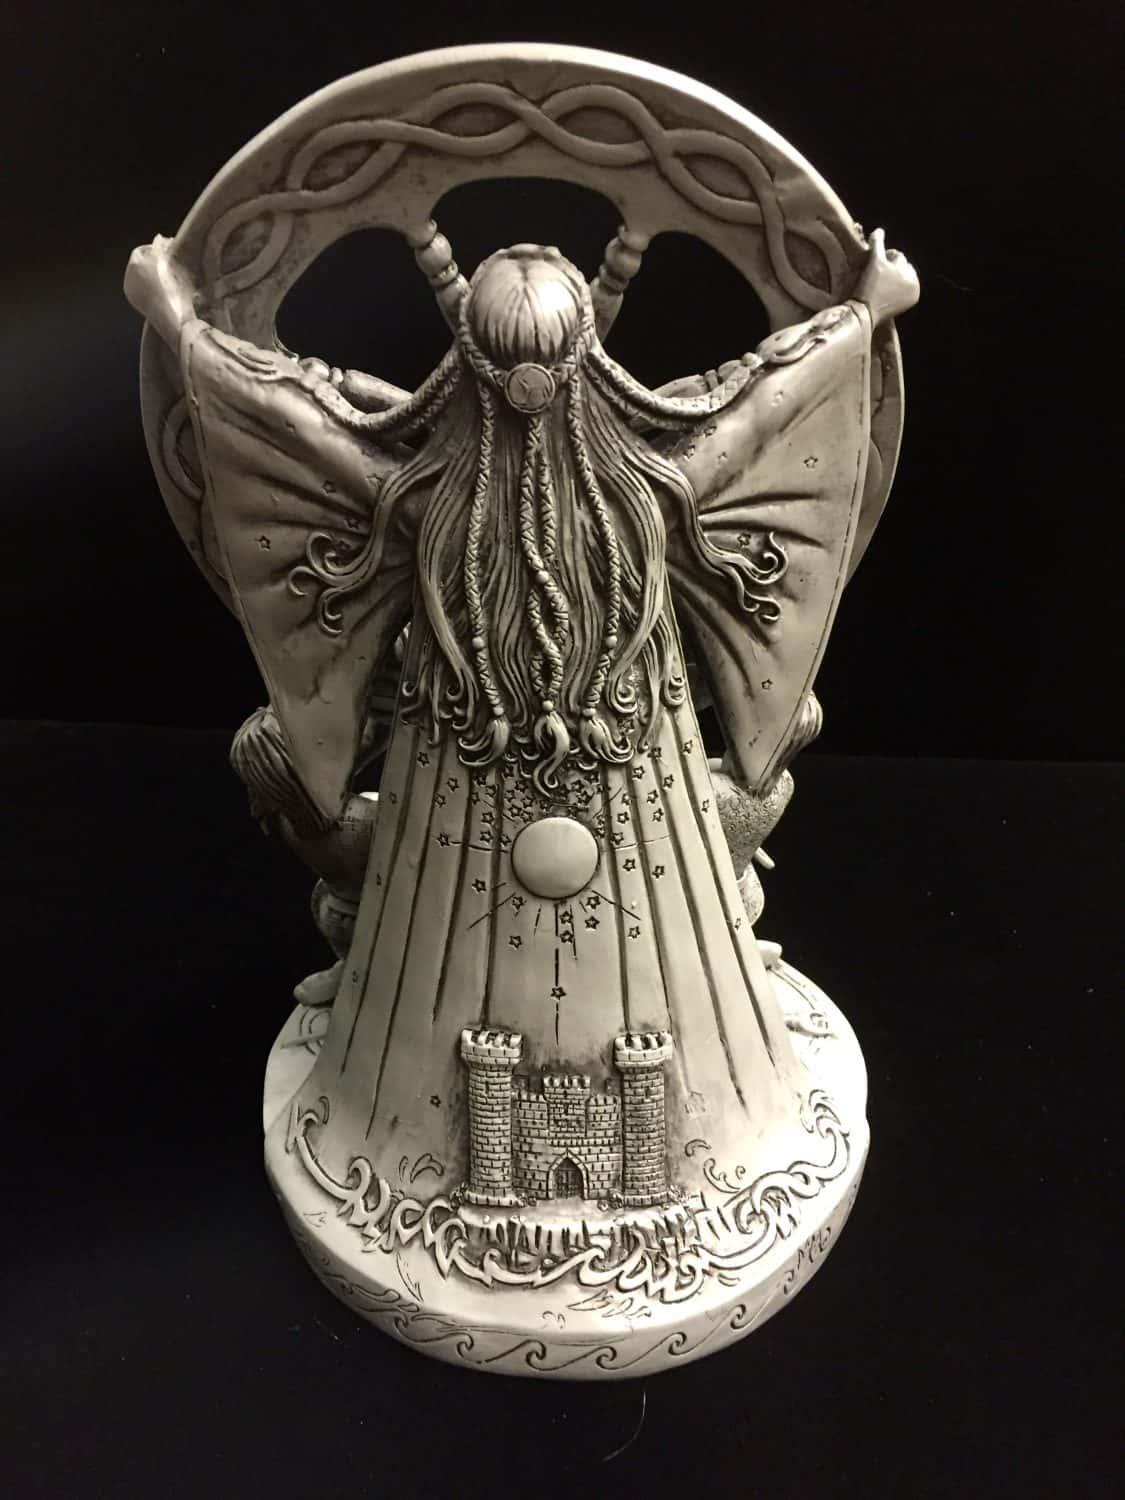 Arianrhod Stone Finish Resin Statue by Maxine Miller © Maxine Miller - Rear